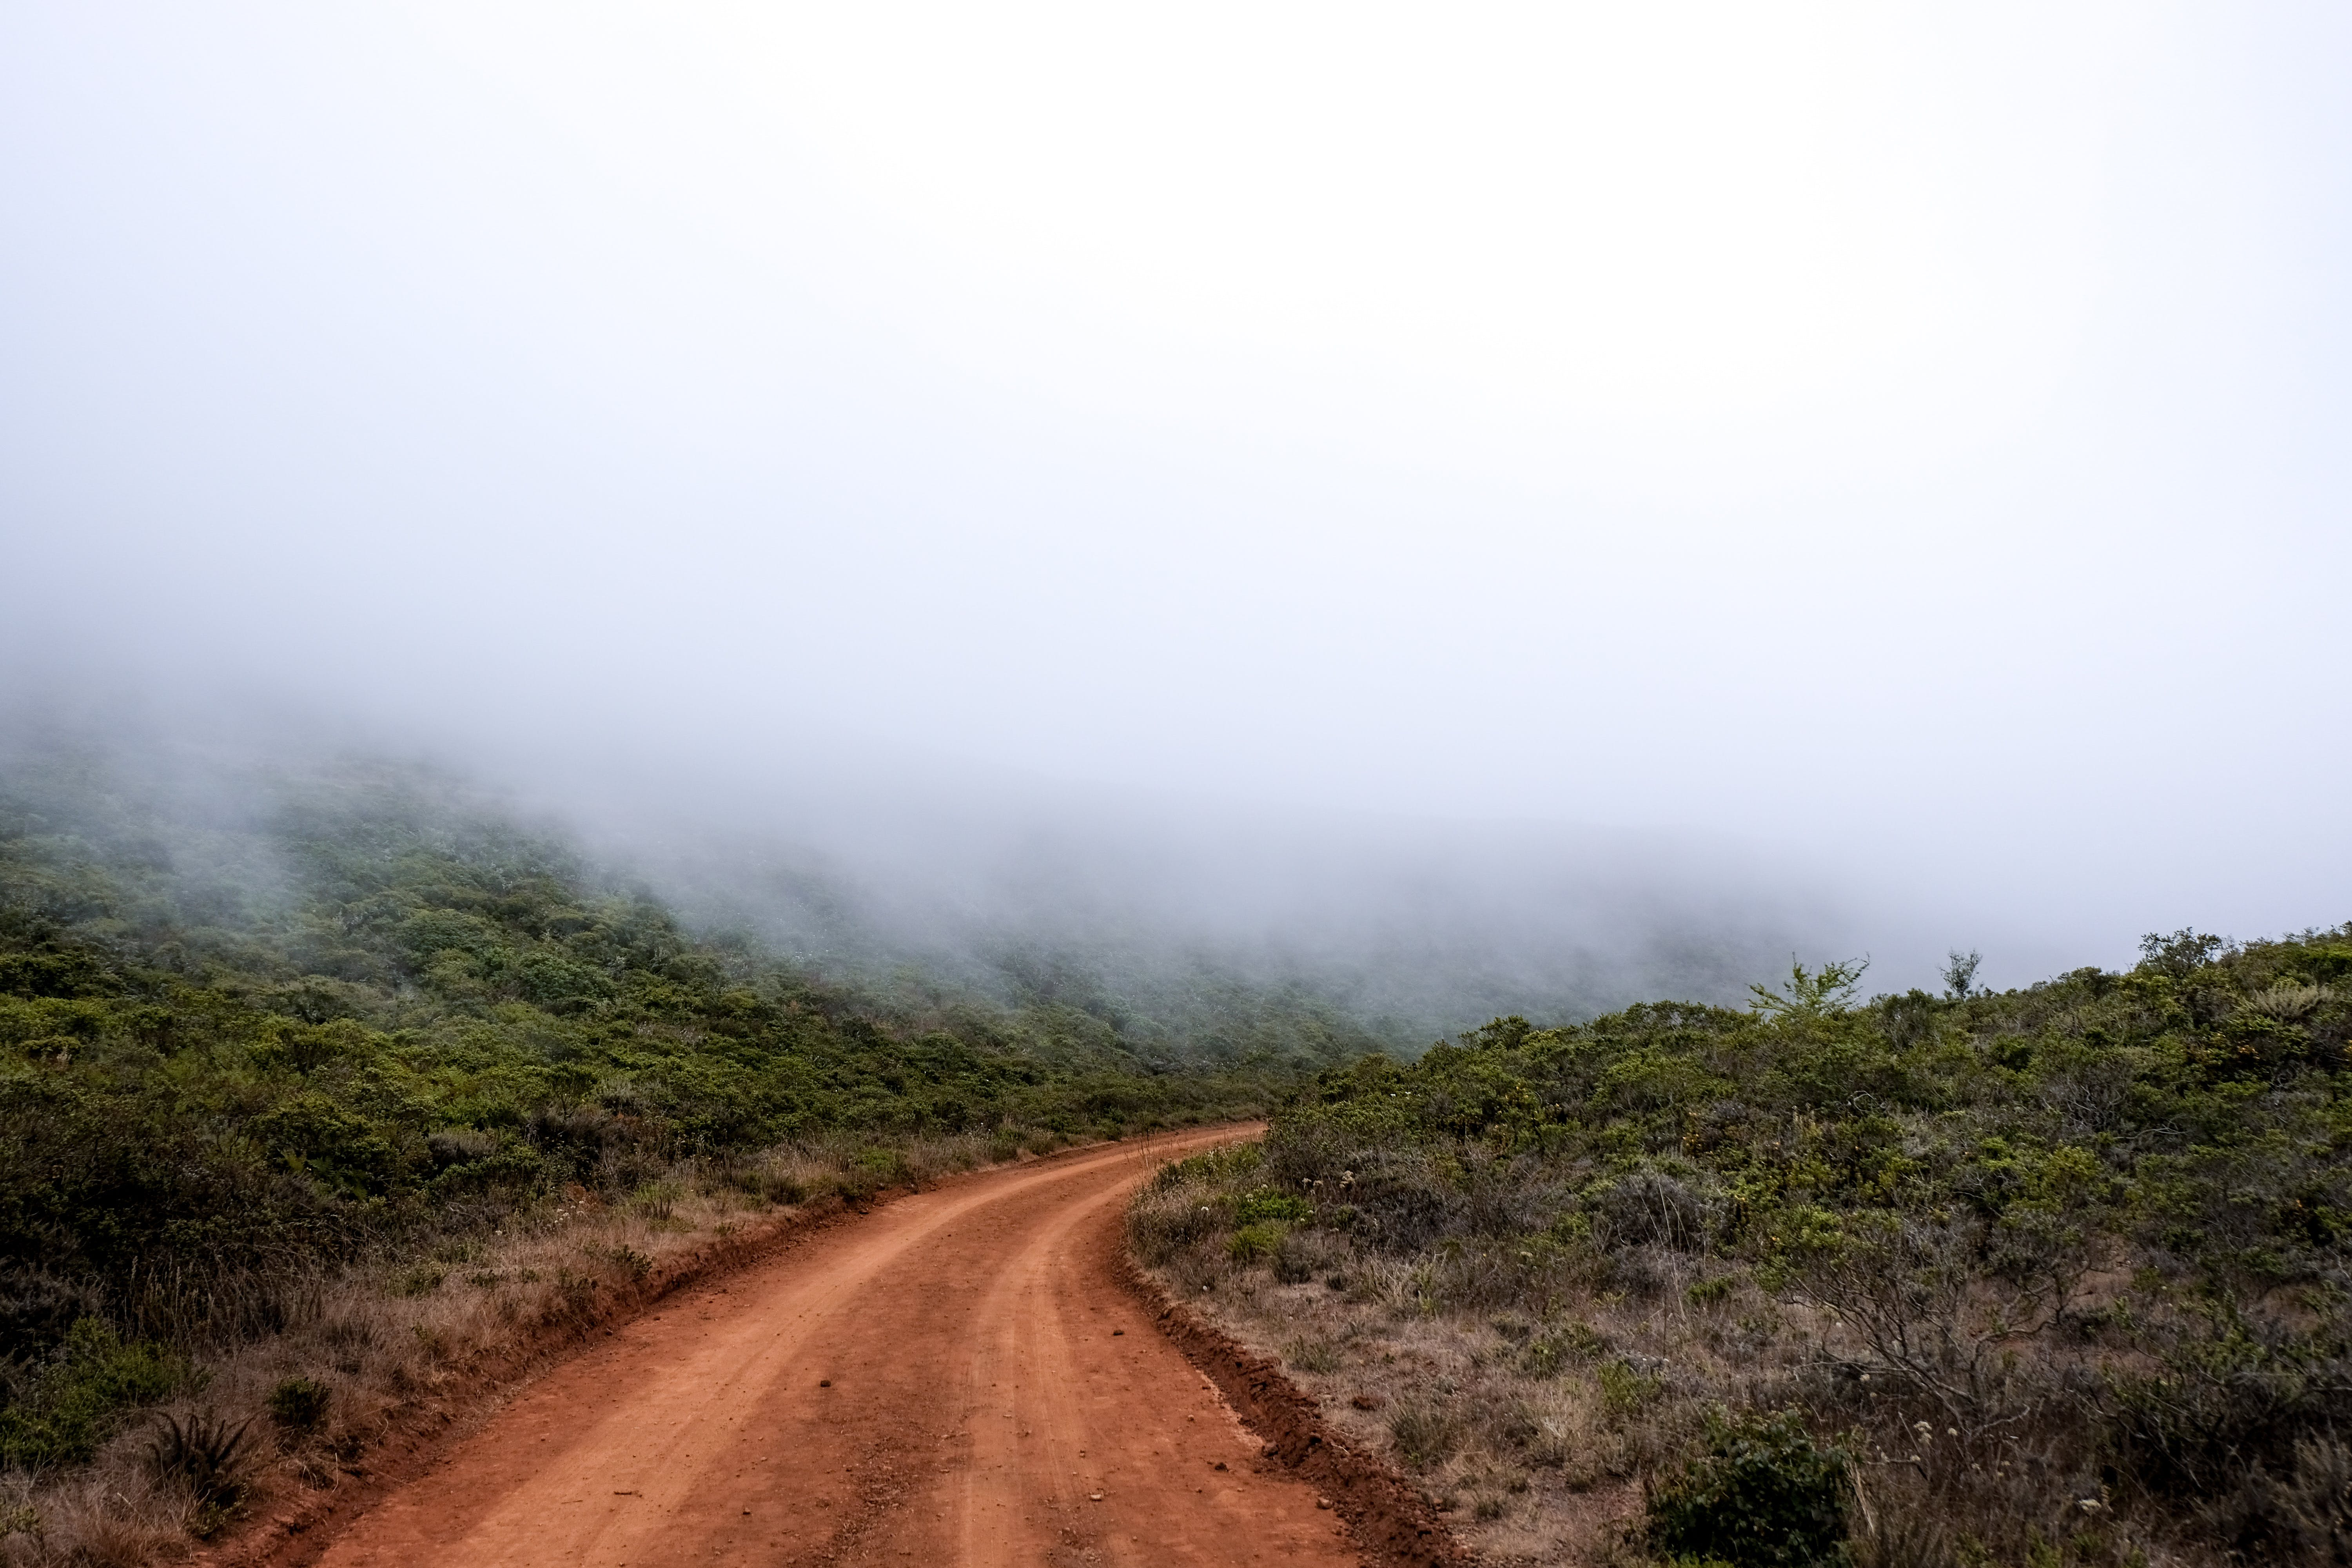 Dirt Road Between Grass Field Covered With Fogs